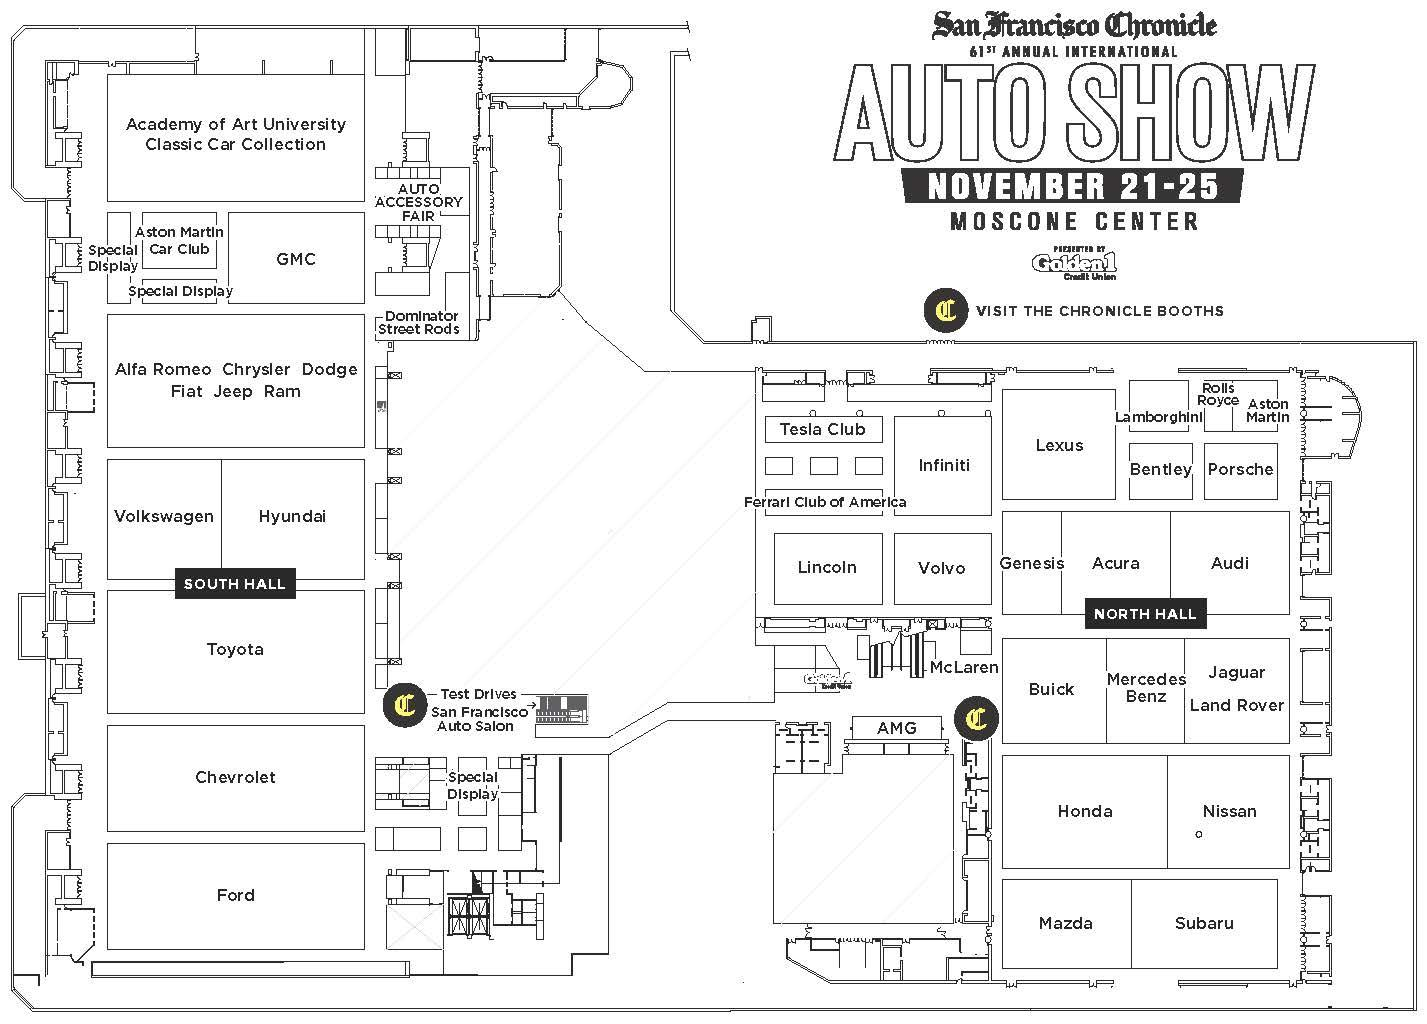 Your guide to the 61st annual International Auto Show